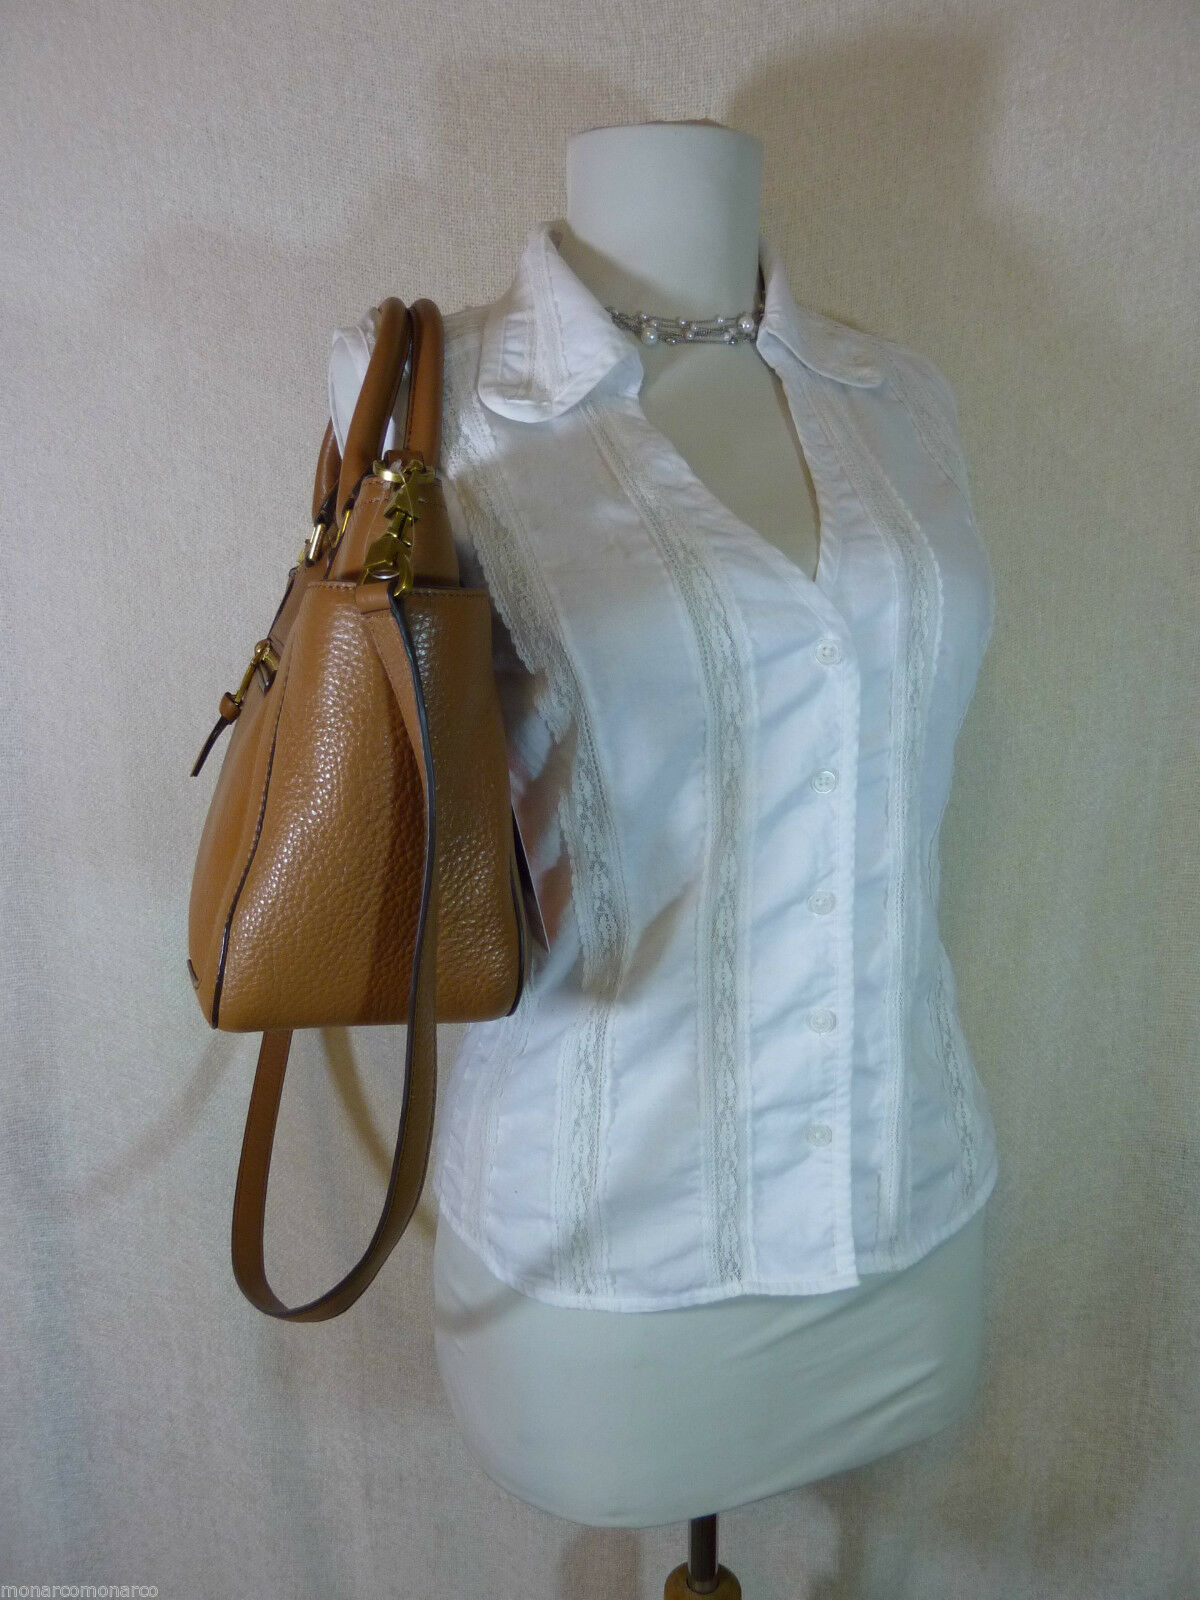 NWT Tory Burch Bark Brown Leather Small Frances Tote/Cross Body Bag